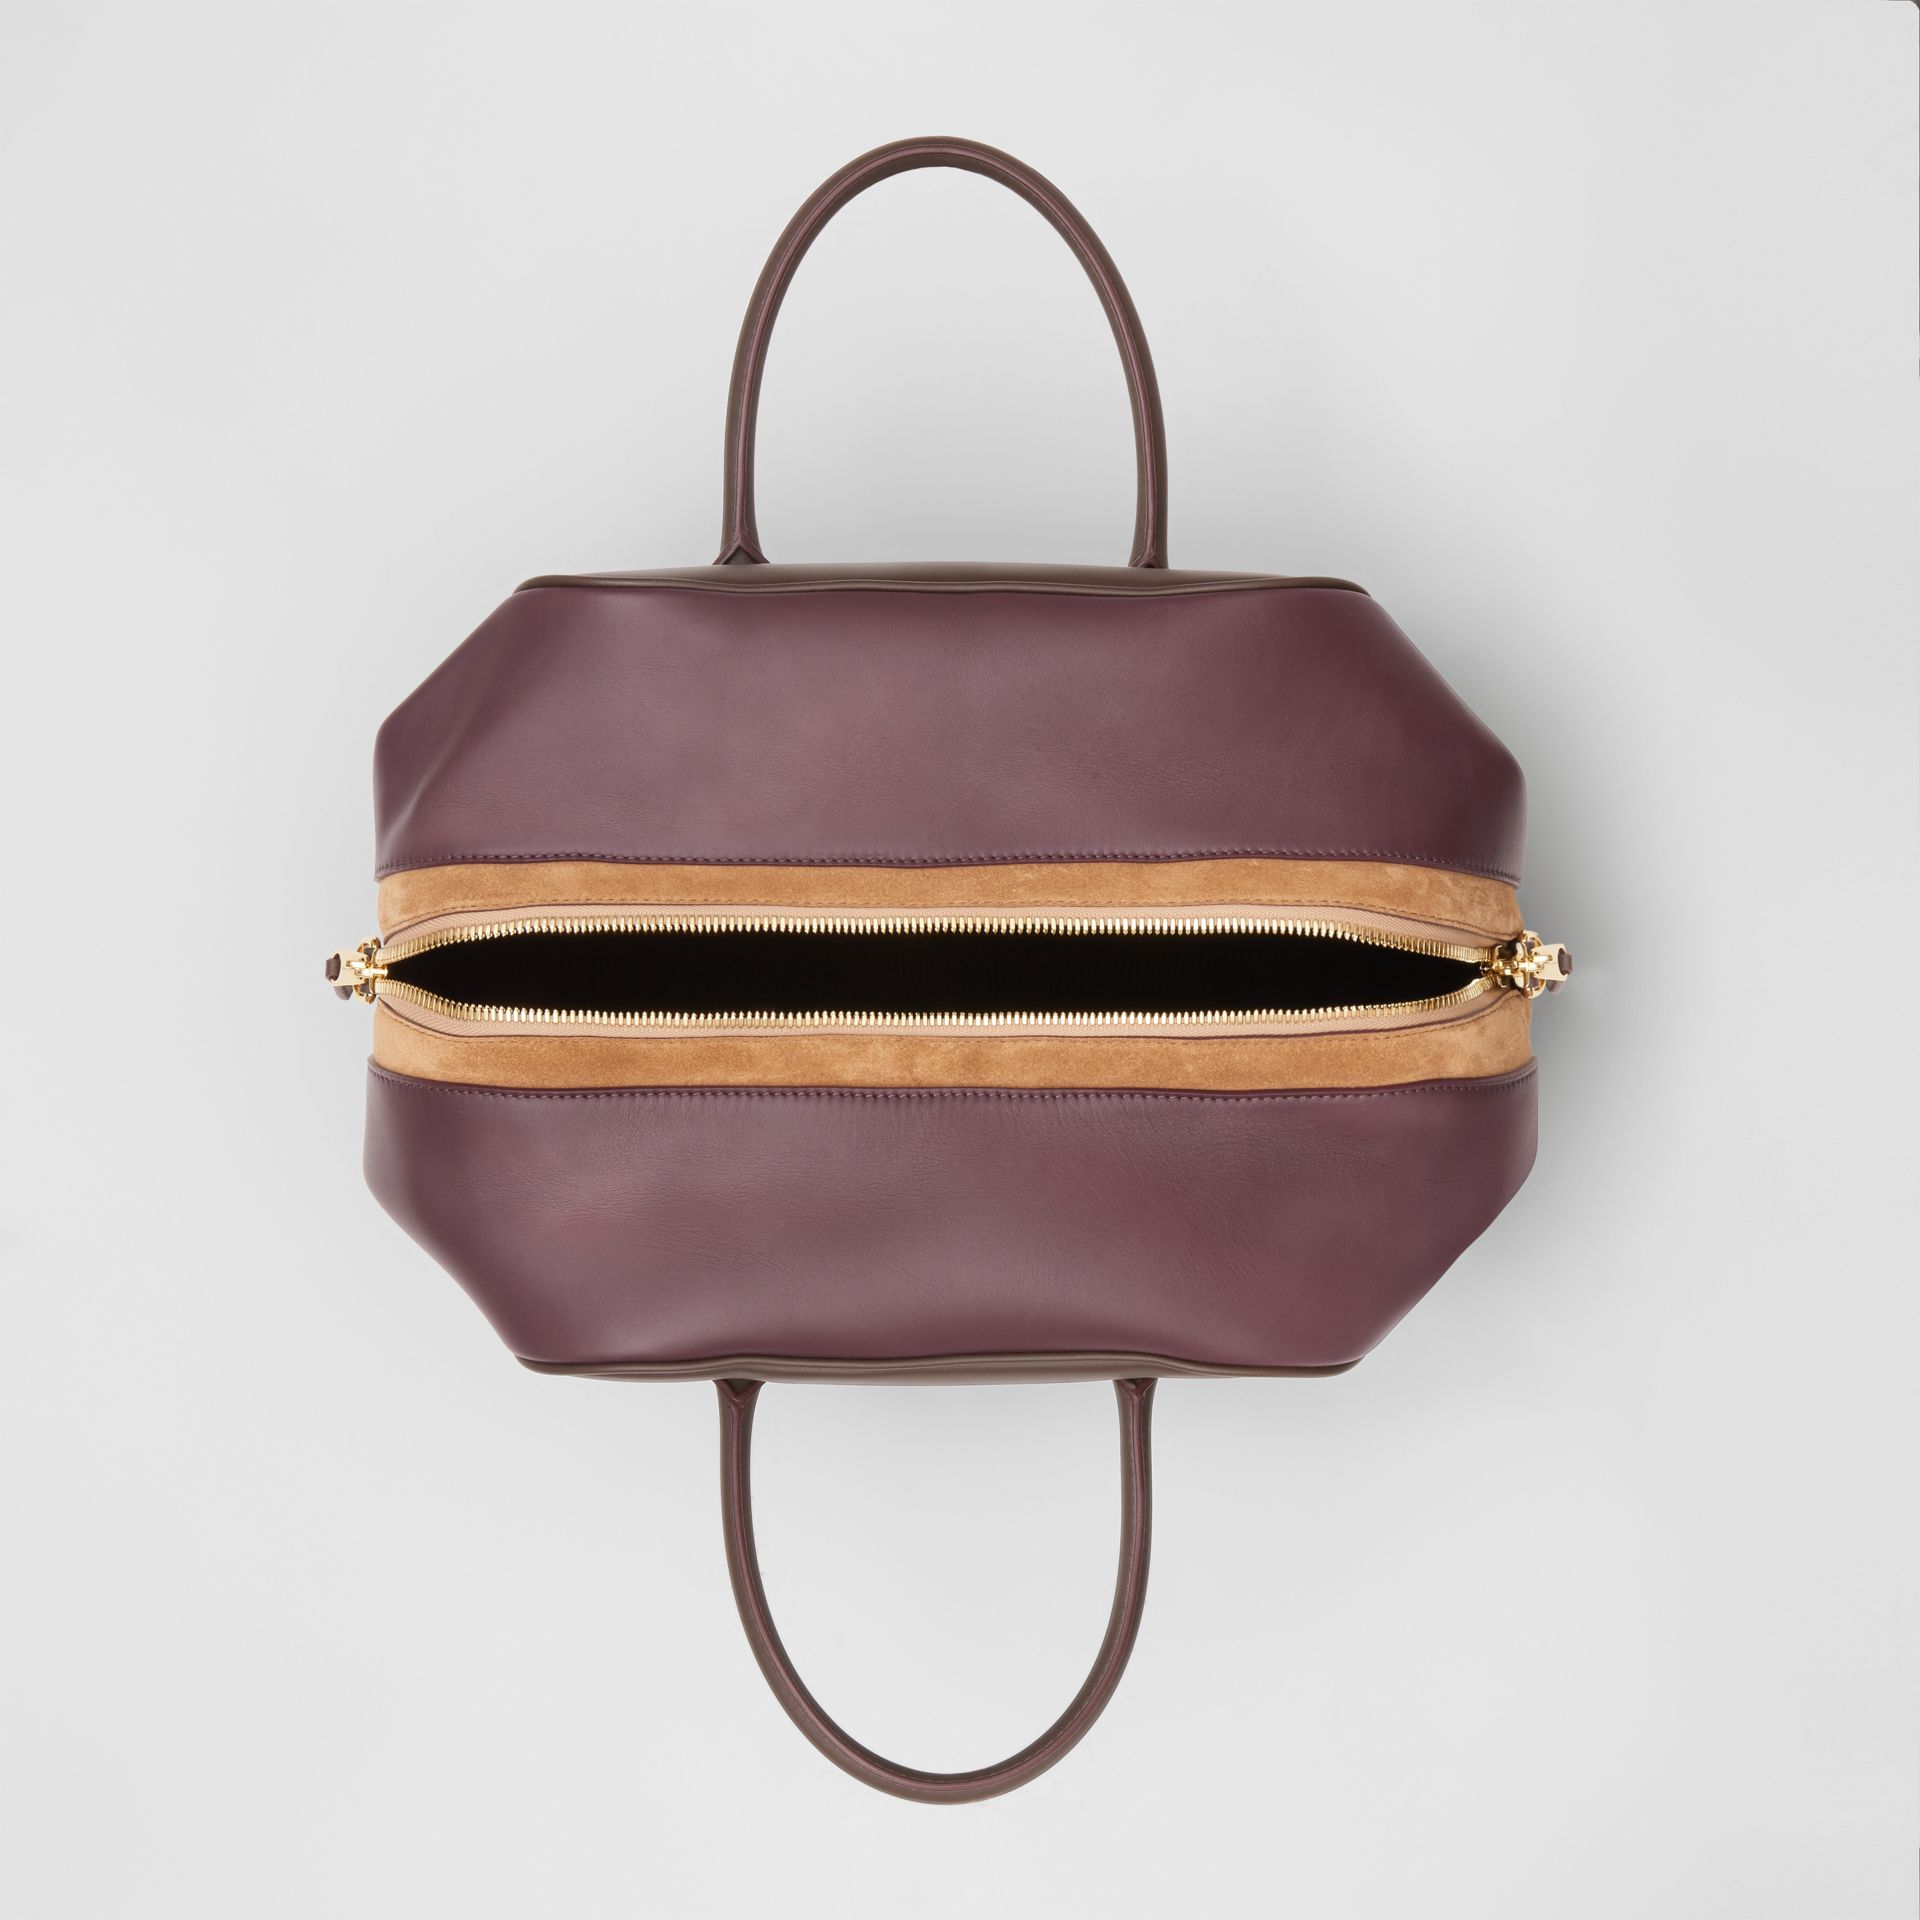 Medium Leather and Suede Cube Bag in Mahogany - Women | Burberry United States - gallery image 4